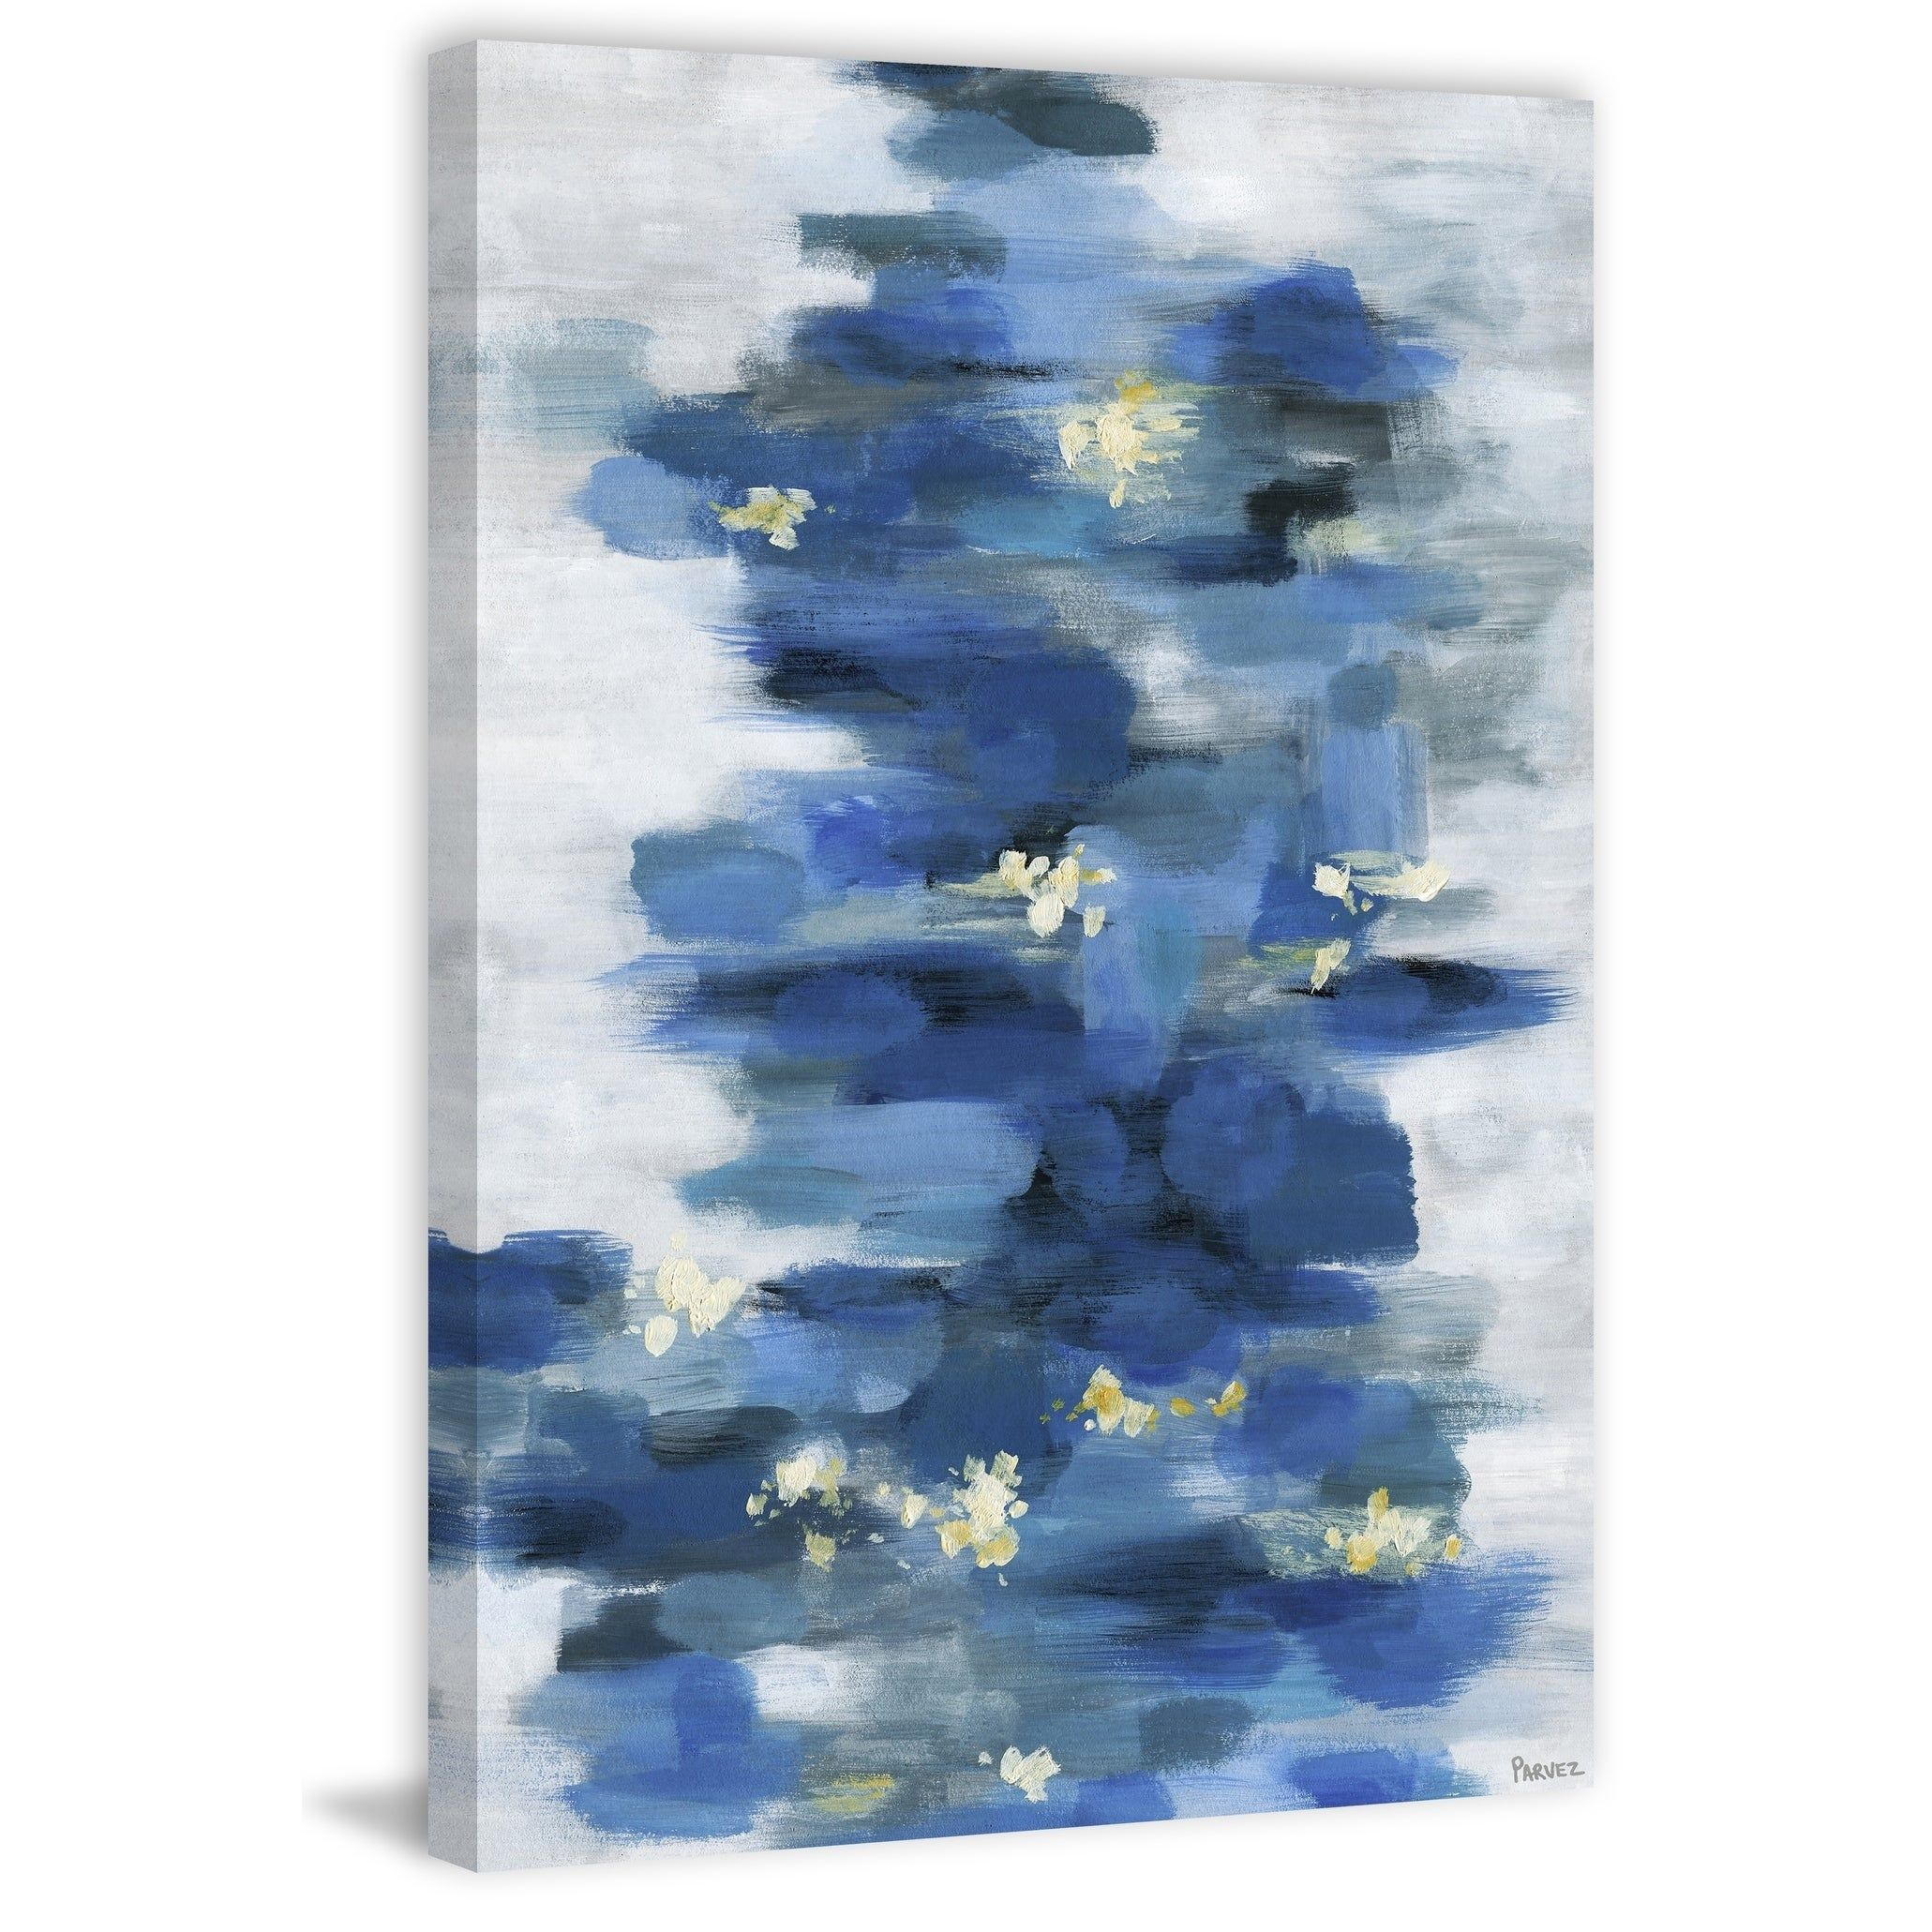 Blurry Blue Flowers Painting Print On Wrapped Canvas In 2020 Blue Flower Painting Canvas Painting Painting Prints